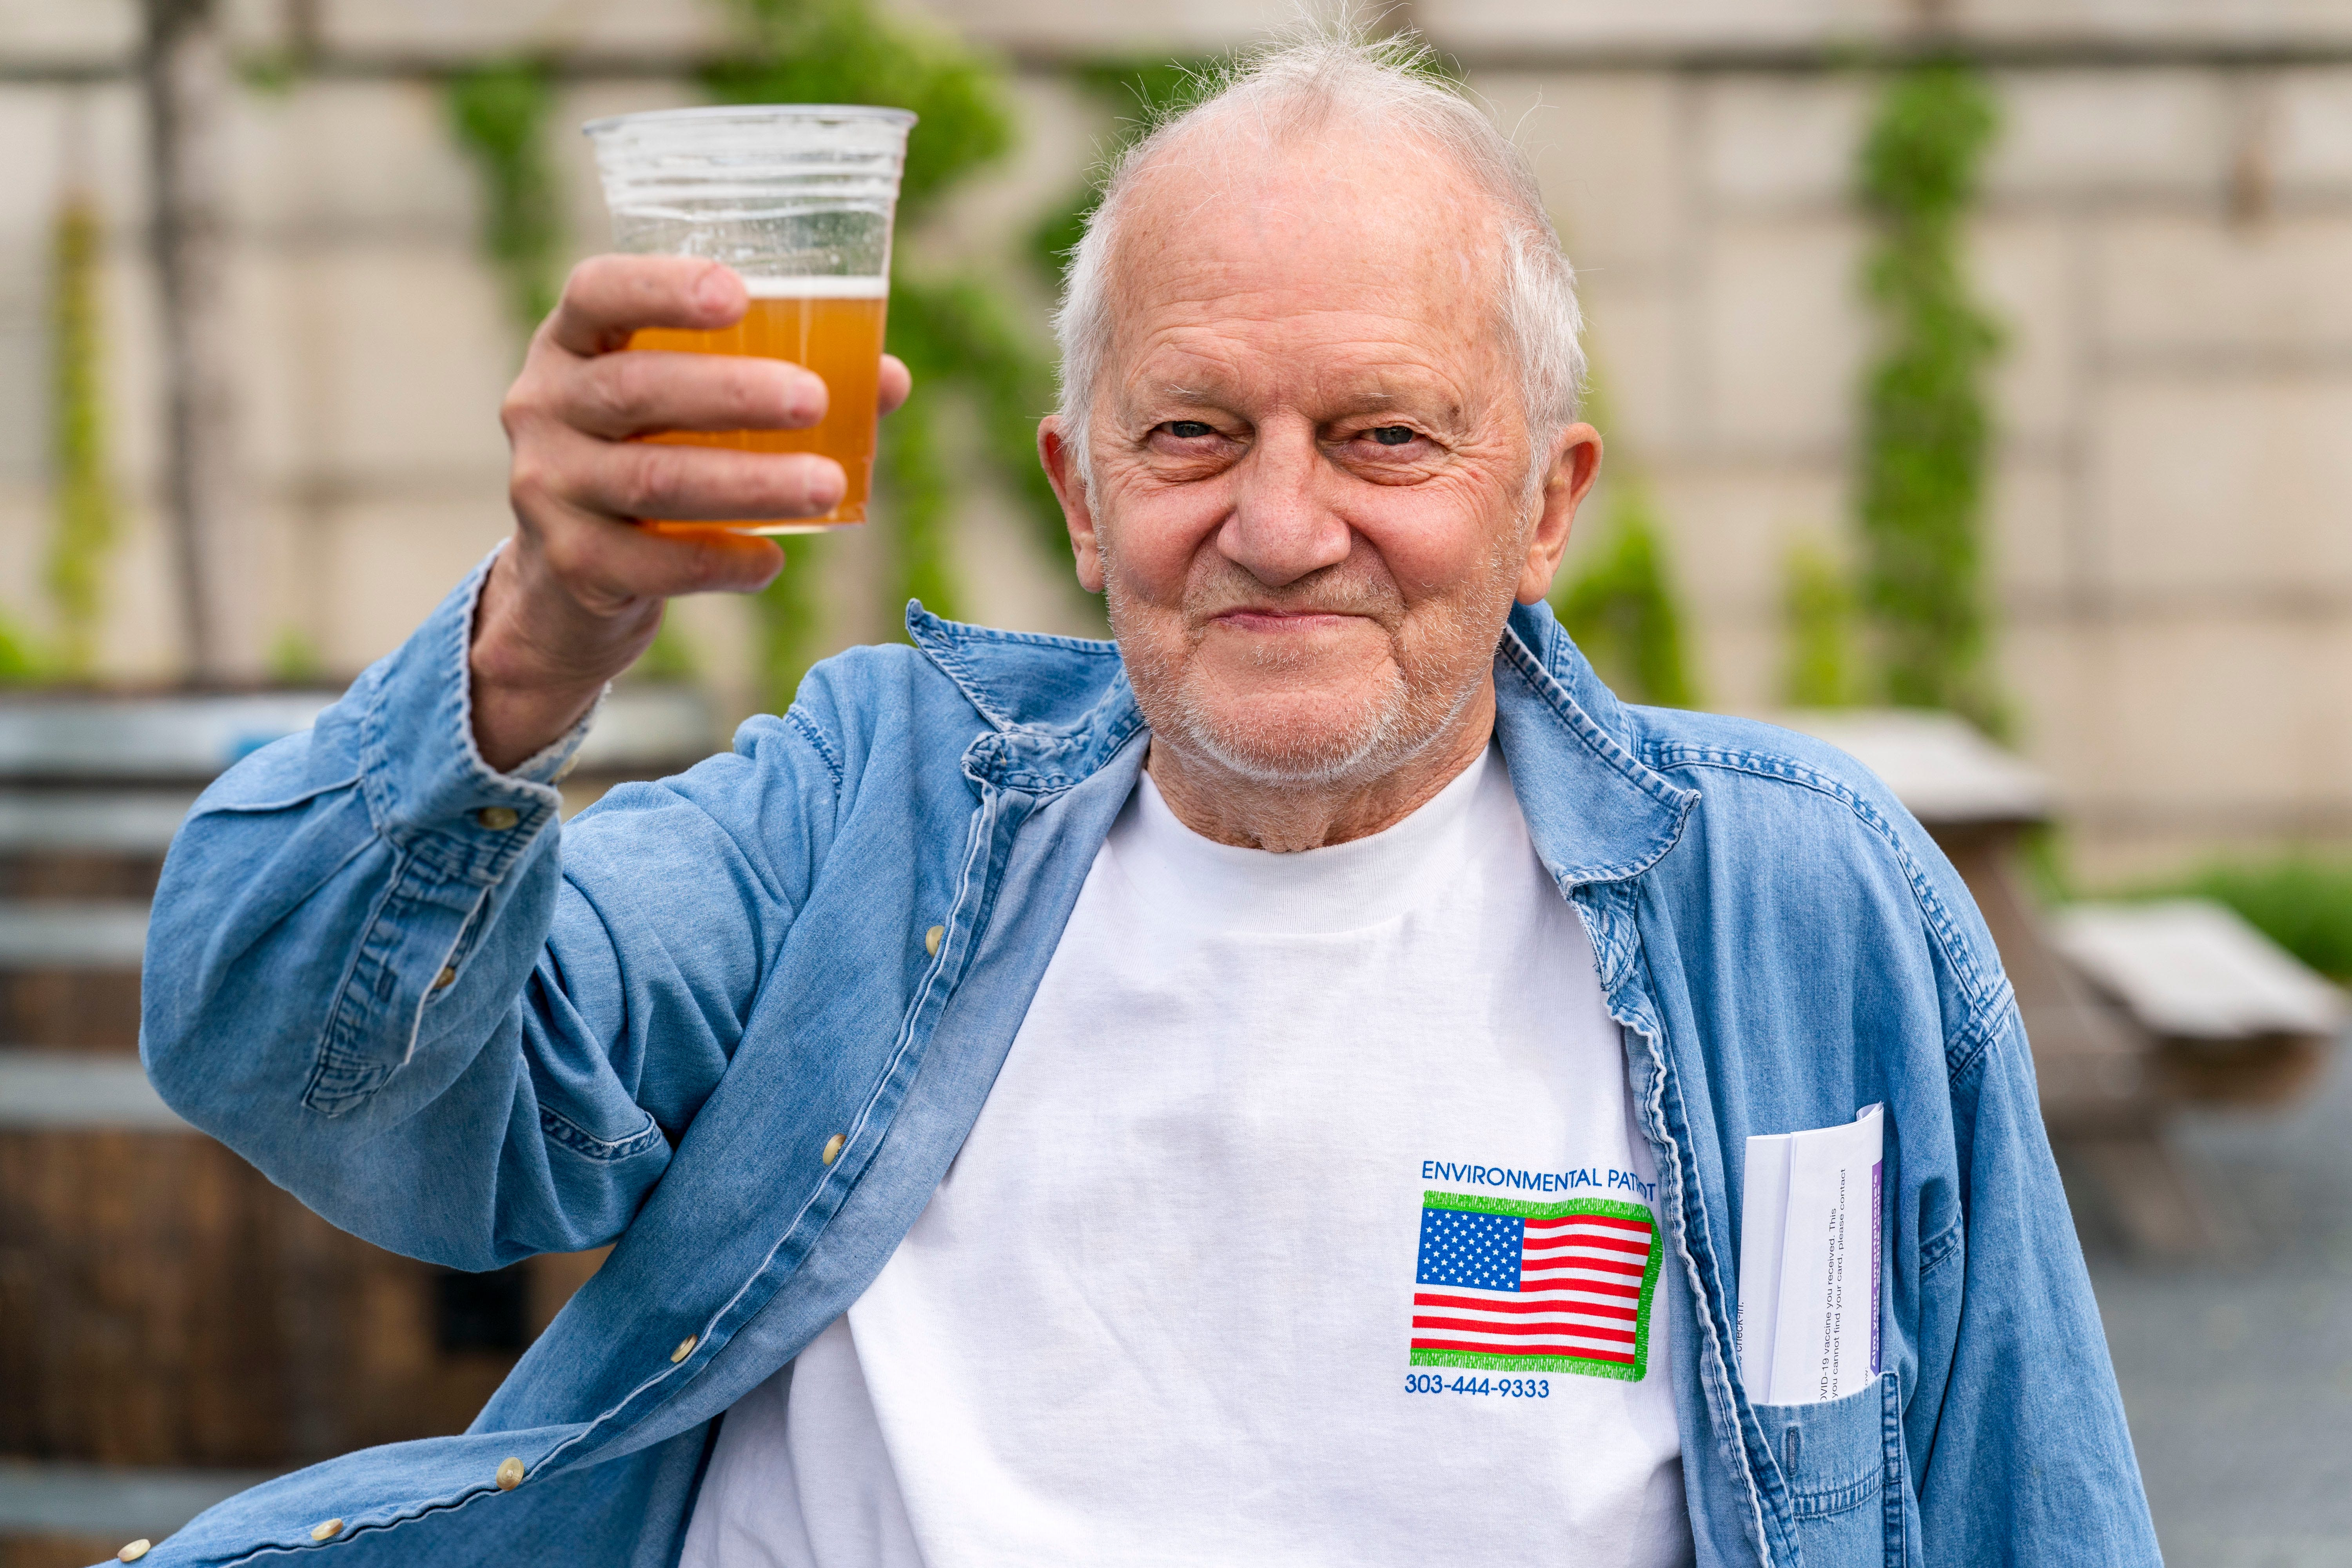 Beer is latest vaccine incentive for Biden 'month of action' 2